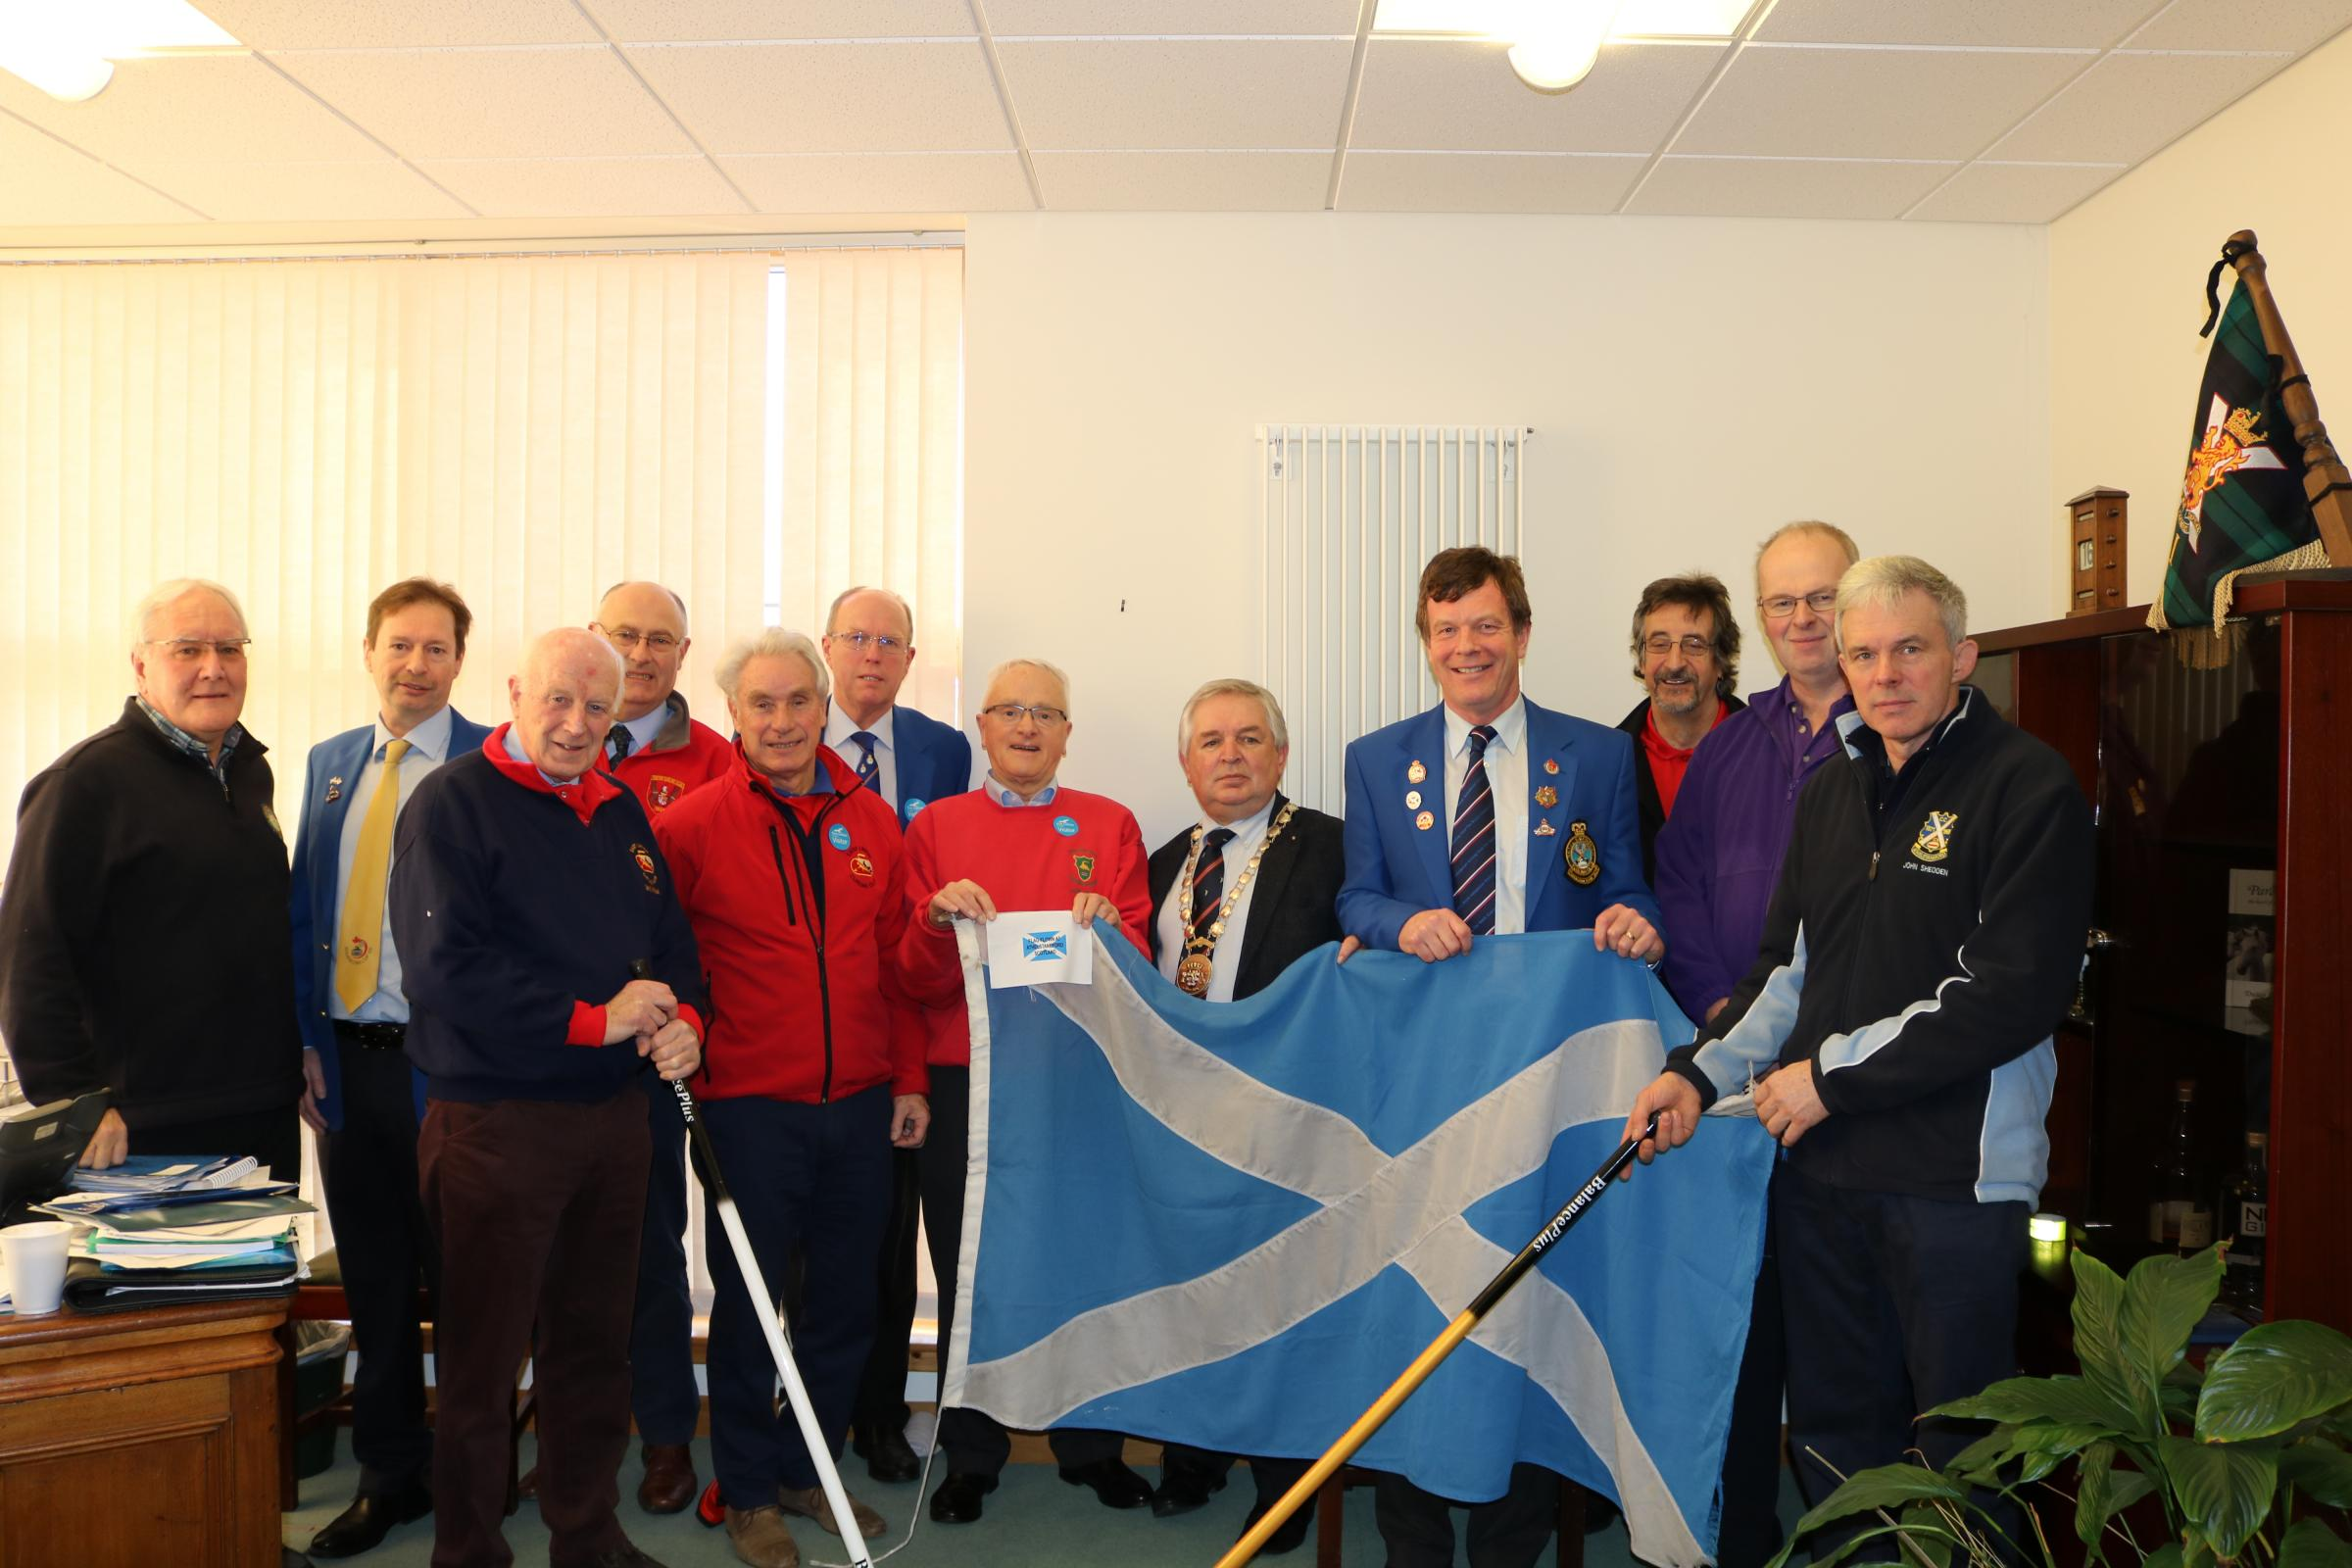 The flag is handed over by Provost John McMillan